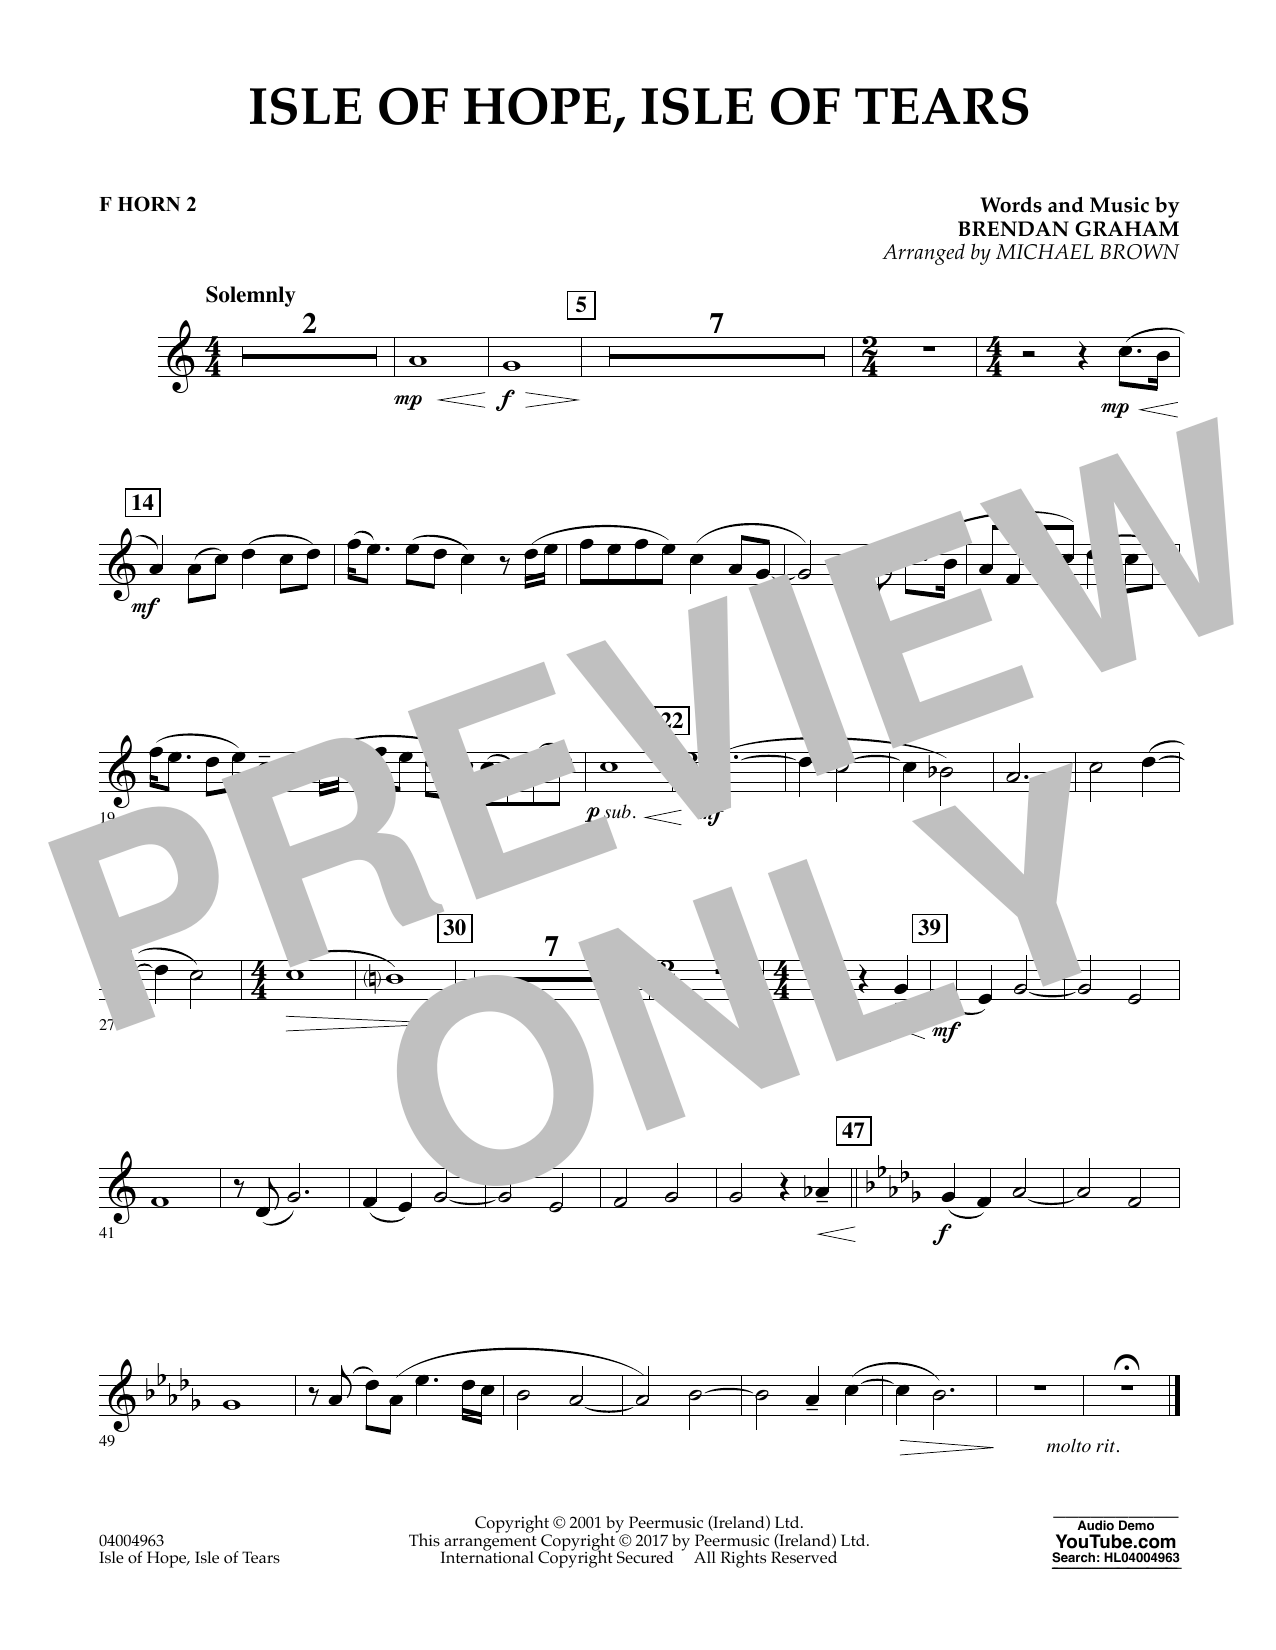 Isle of Hope, Isle of Tears - F Horn 2 Sheet Music